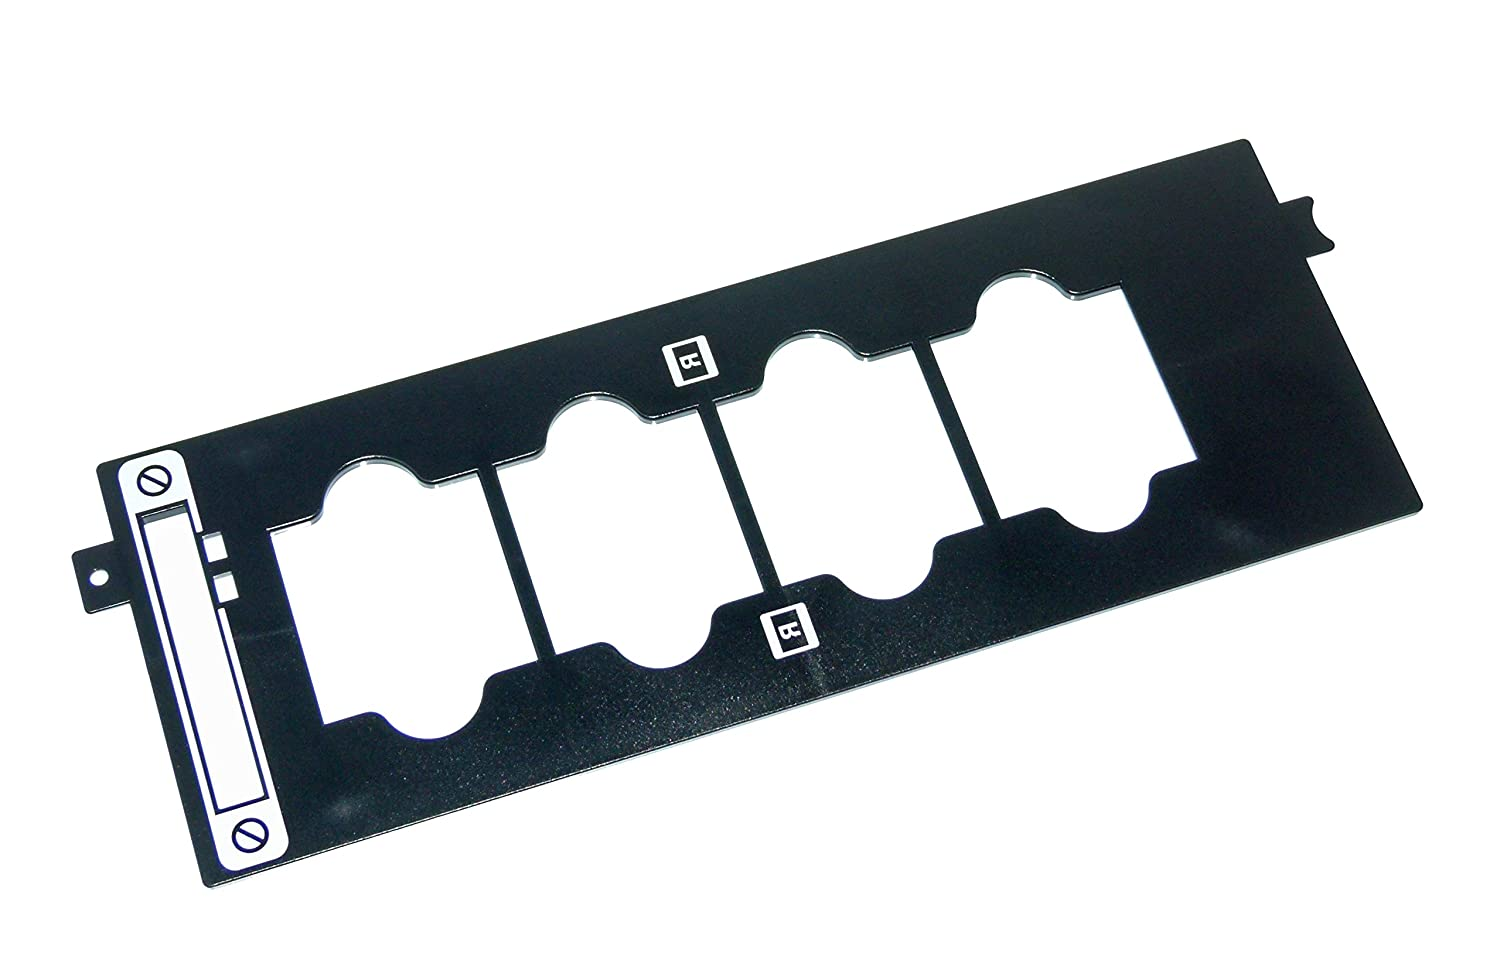 OEM Canon CanoScan 9000 - Slide Holder